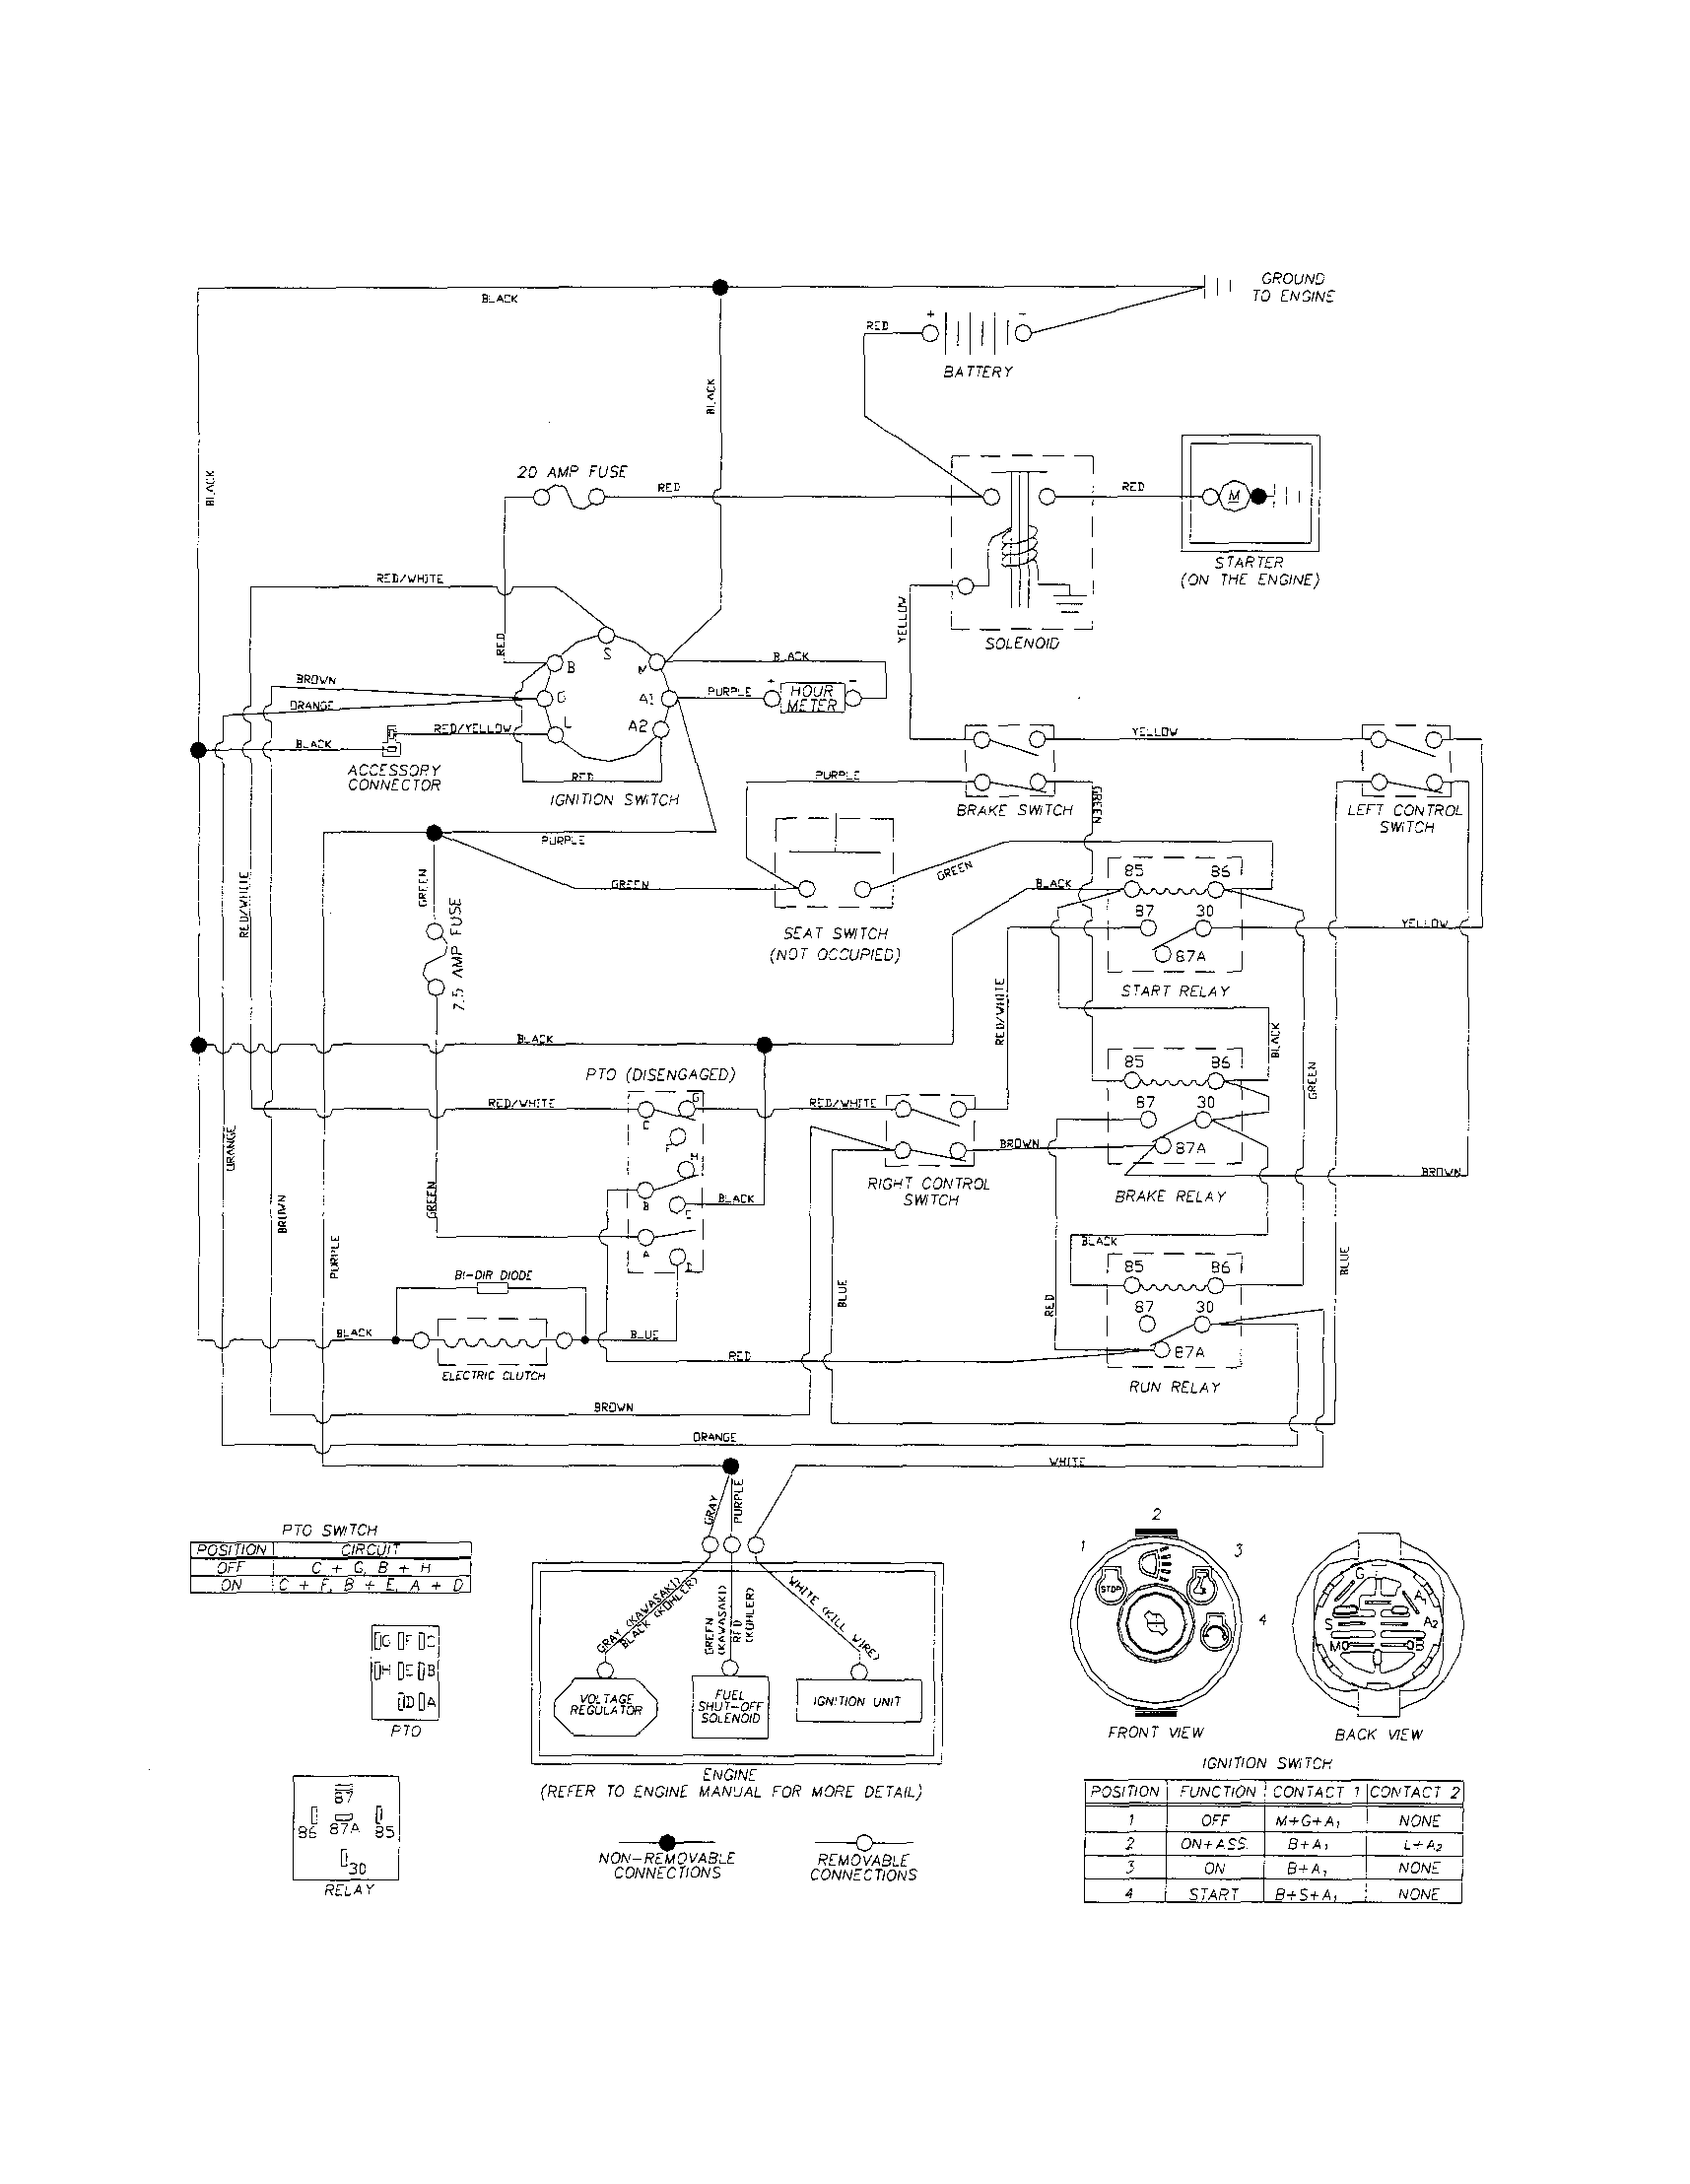 hight resolution of husqvarna wiring schematic blog wiring diagram wiring diagram for husqvarna riding mower husqvarna wire diagram wiring